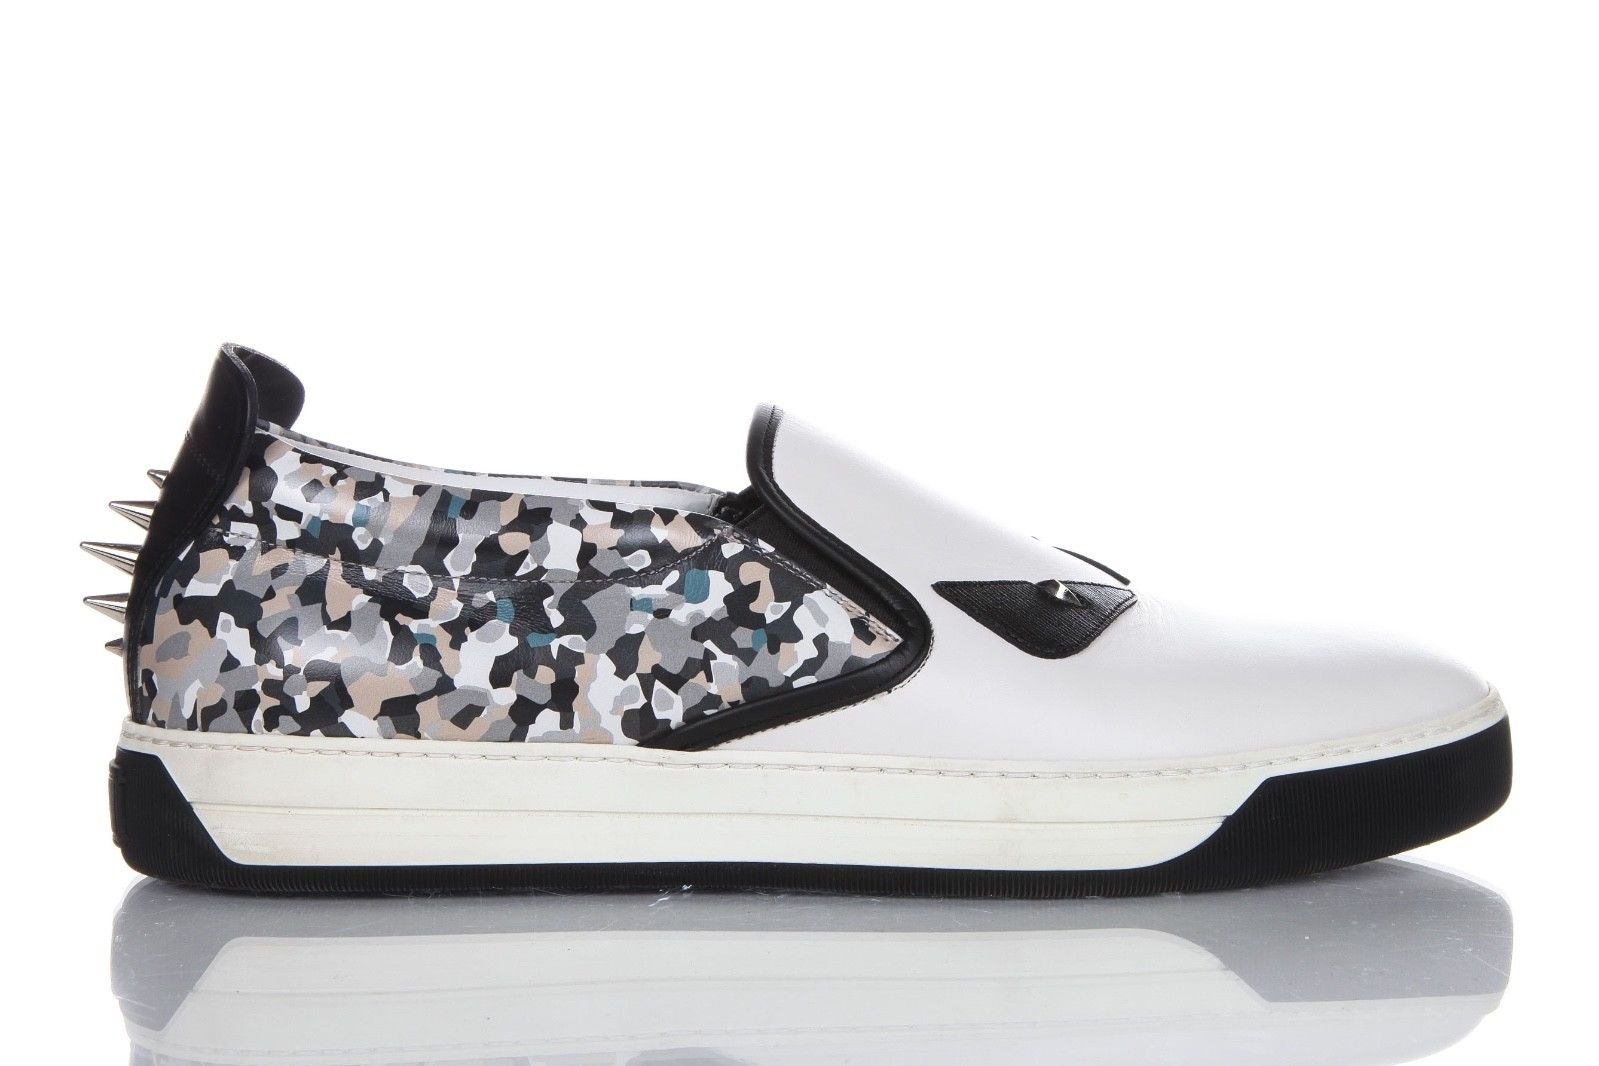 Fendi Monster Spike Sneakers Camo White